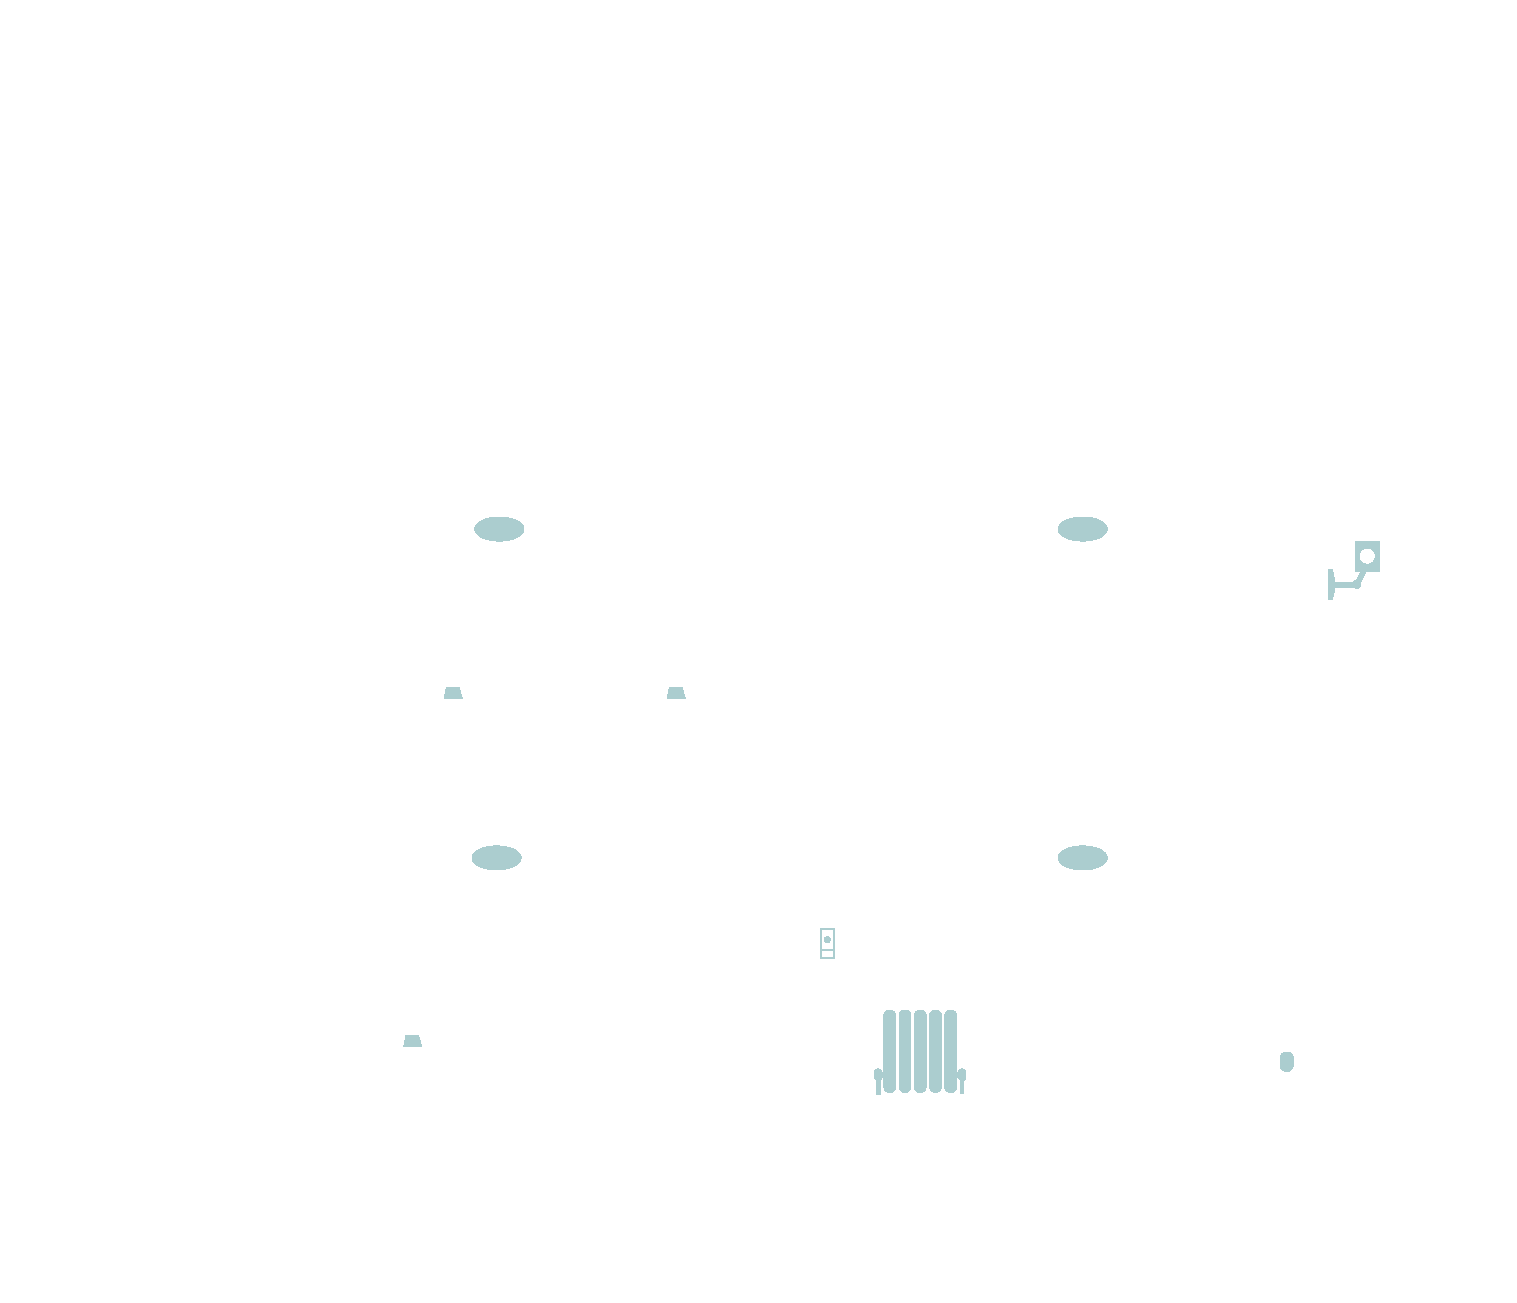 outline of the inside of a house with lightbulbs, radiator, voice assistant, doorbell and outdoor camera highlighted in green